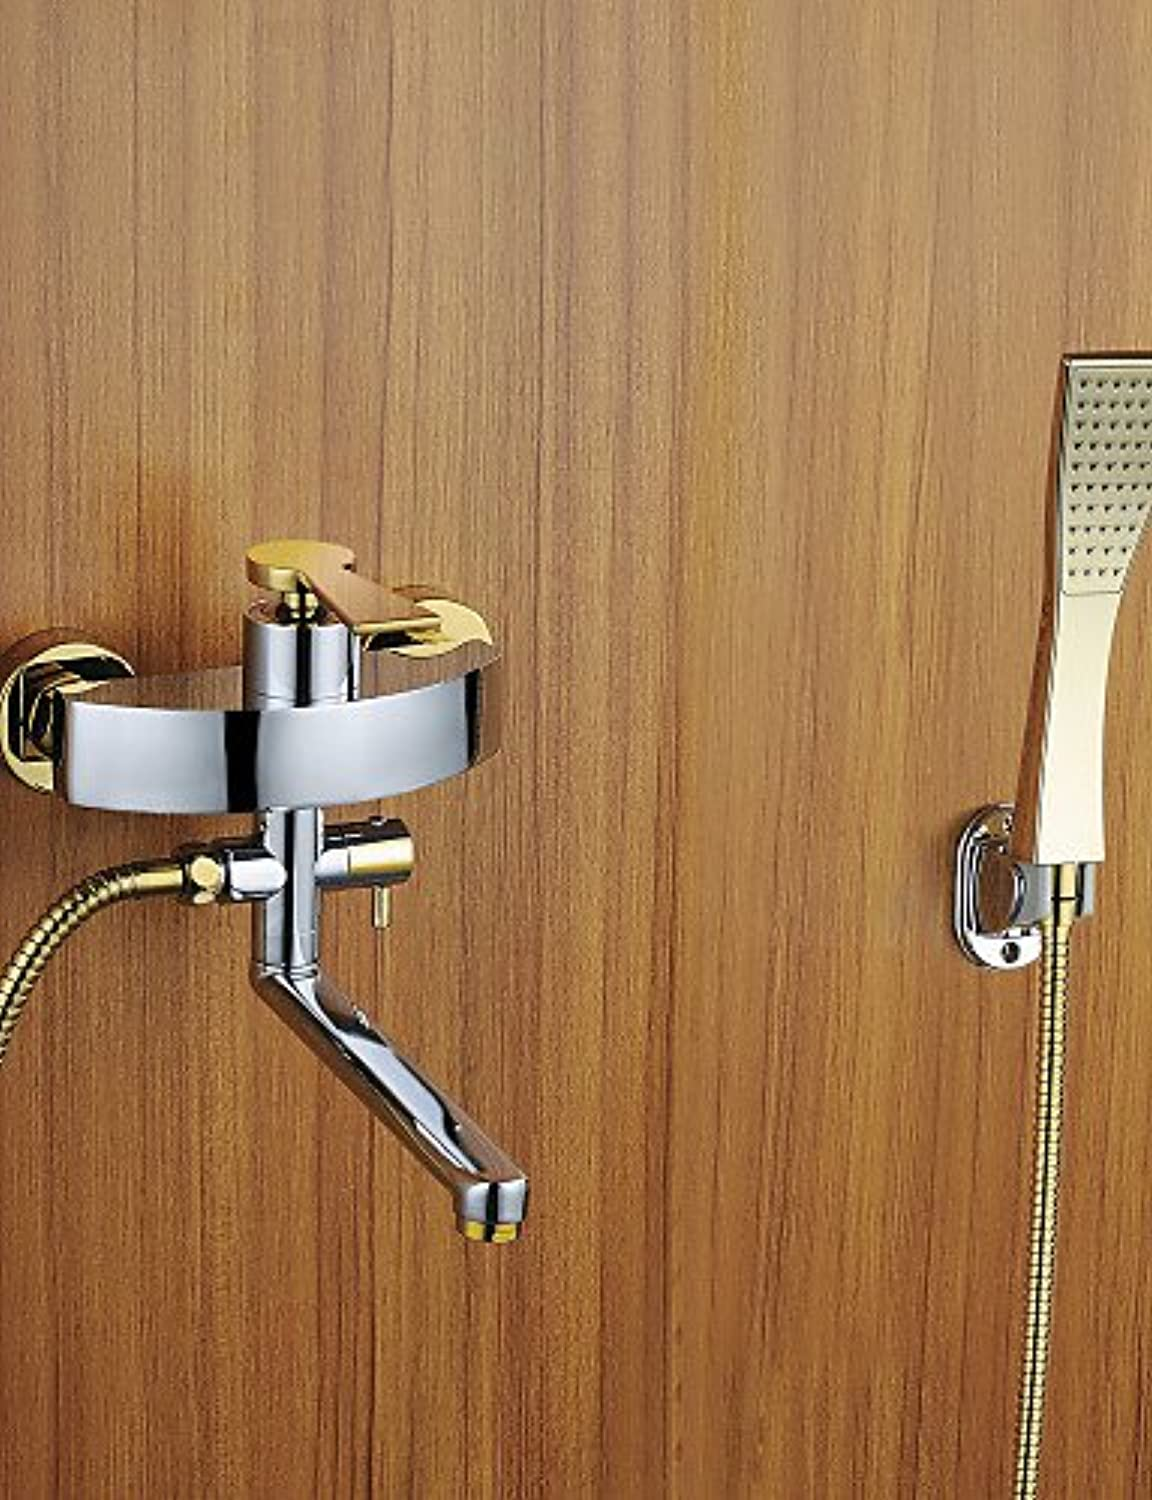 - Shower Faucet   Bathtub Faucet - Contemporary - Handshower Included - Brass (Chrome)